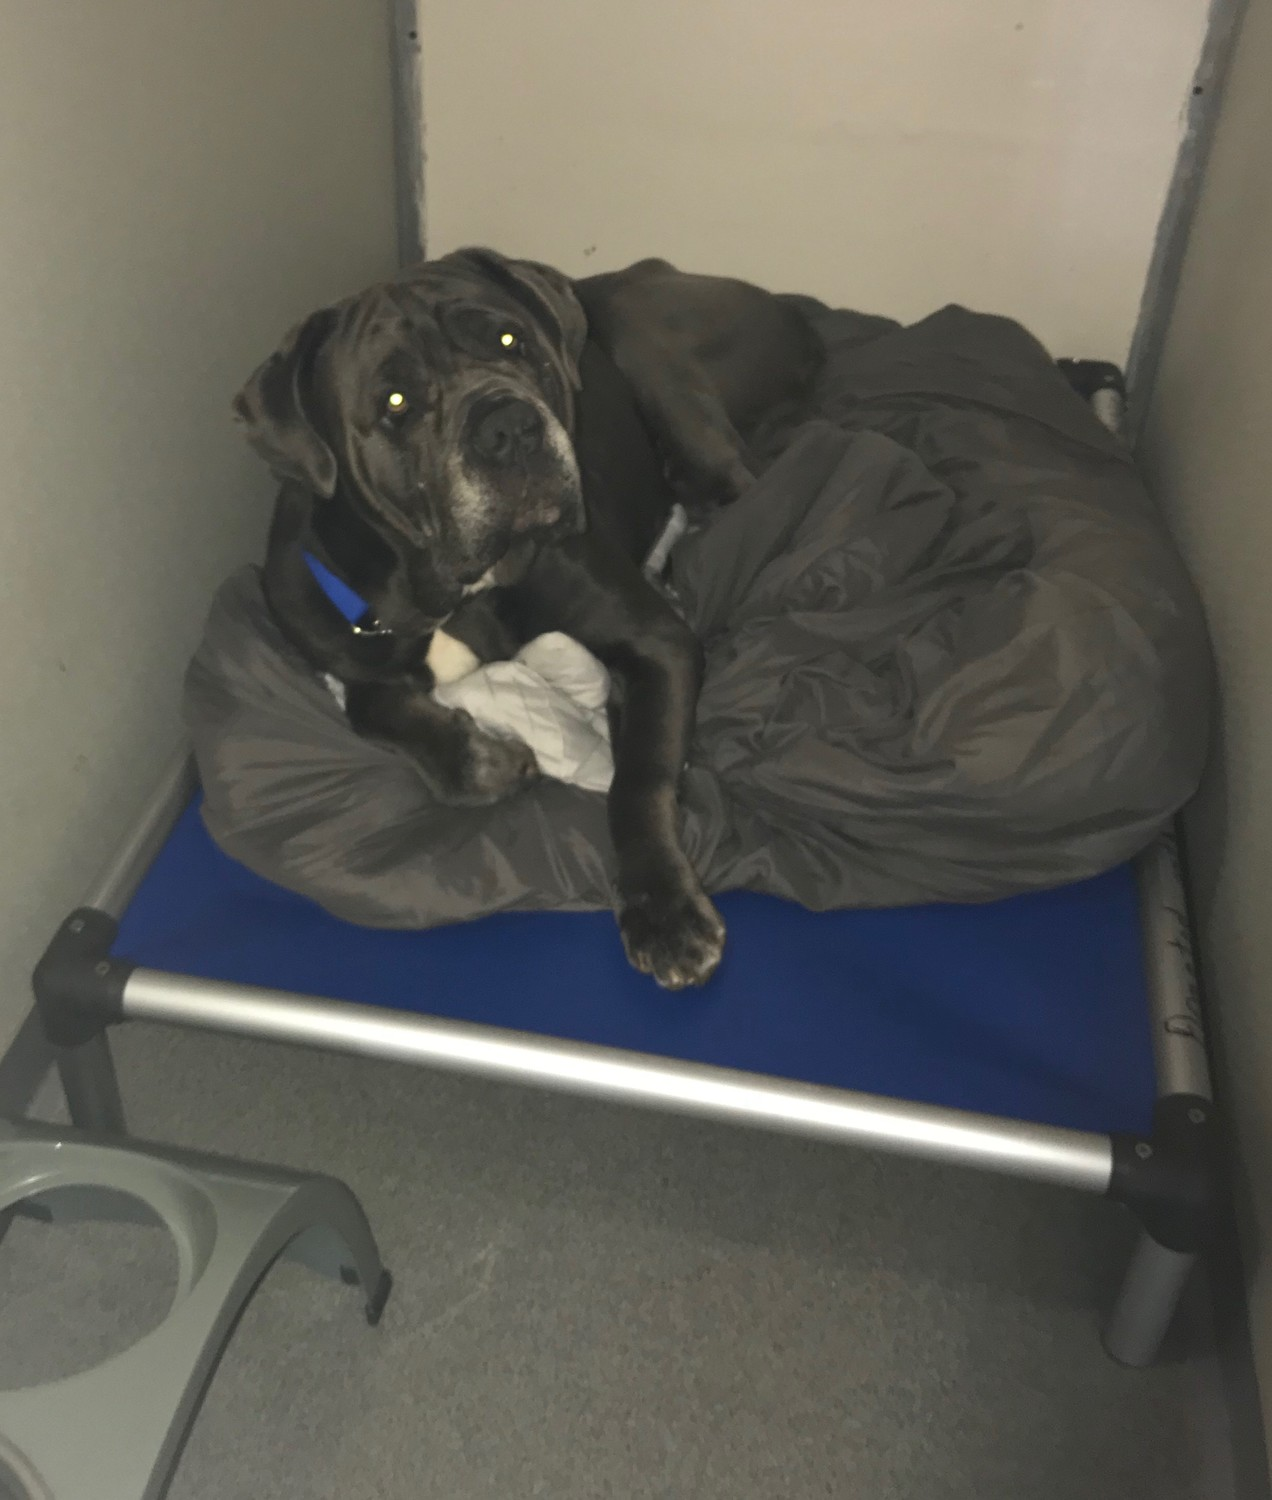 Kane, a Cane Corso, cuddled with his grey blanket on the largest bed that Kuranda makes. The beds allow the dogs to sleep, off the ground.